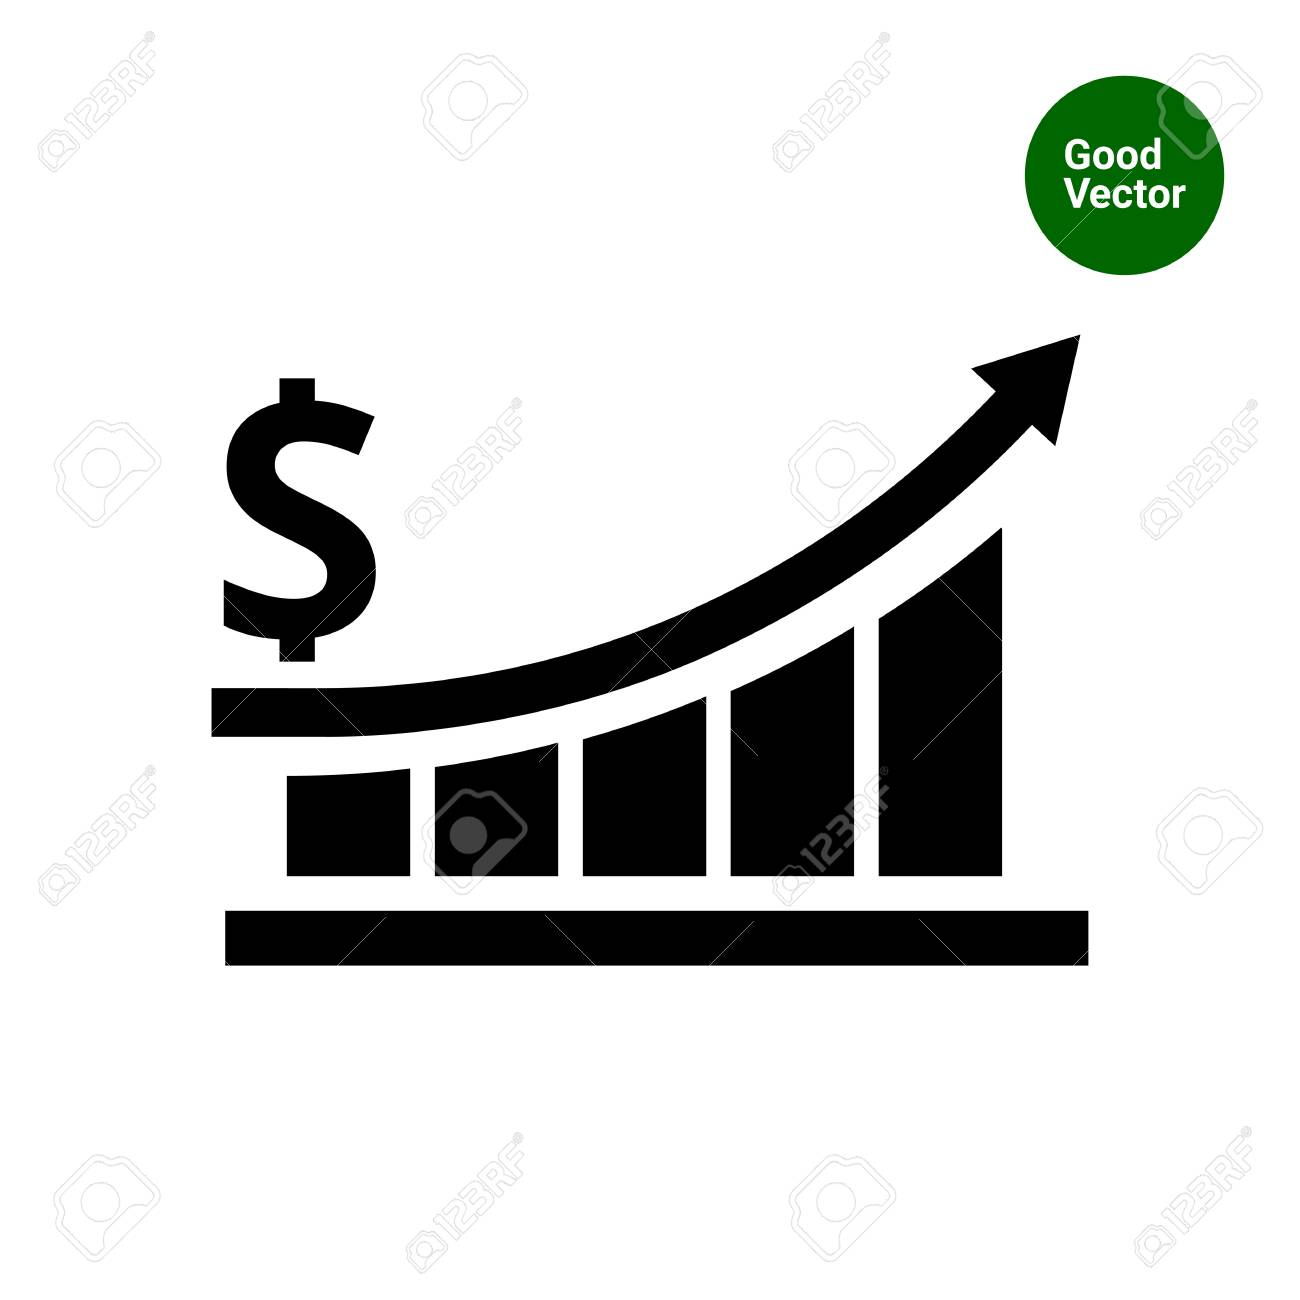 vector icon of growing bar chart with arrow and dollar sign royalty